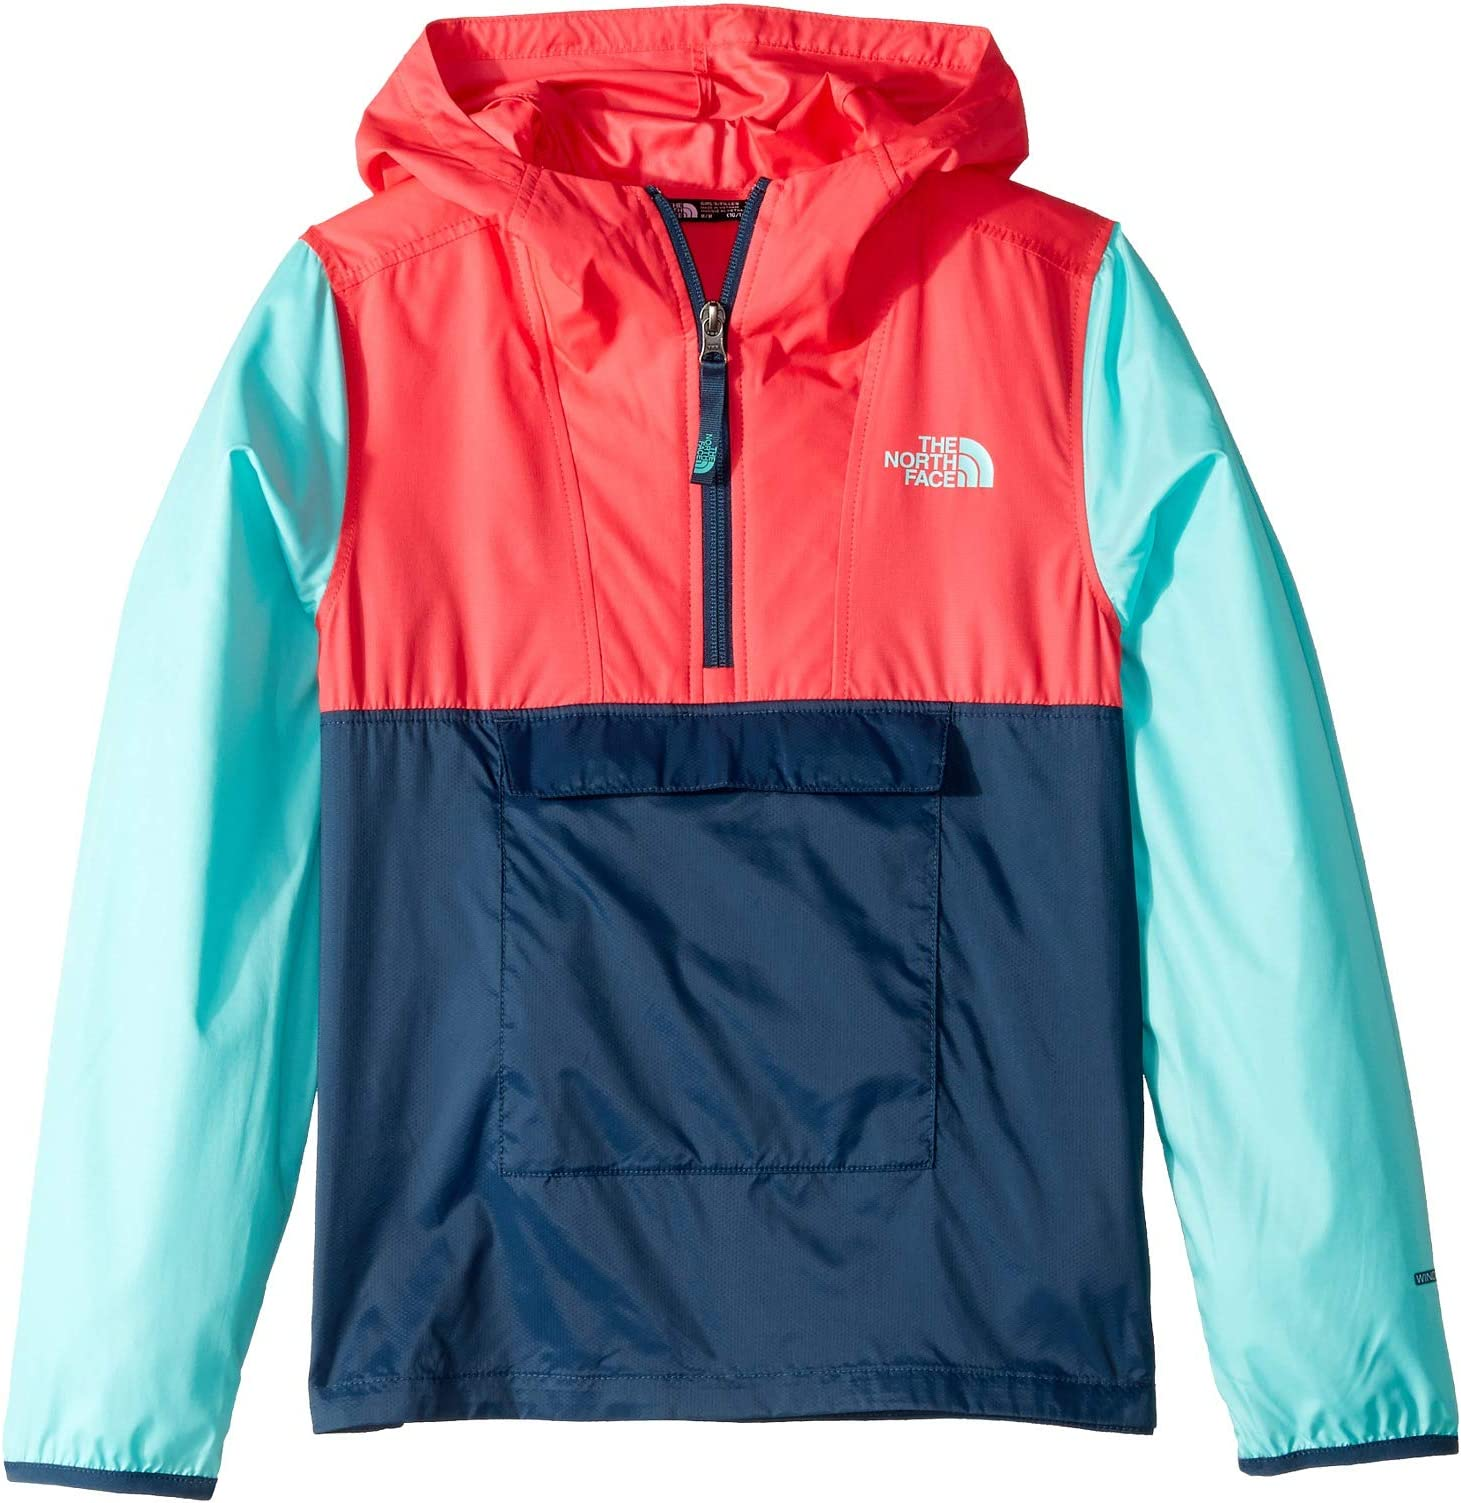 60c0c9e32 The North Face Outerwear, Shoes, Bags, Clothing | Zappos.com